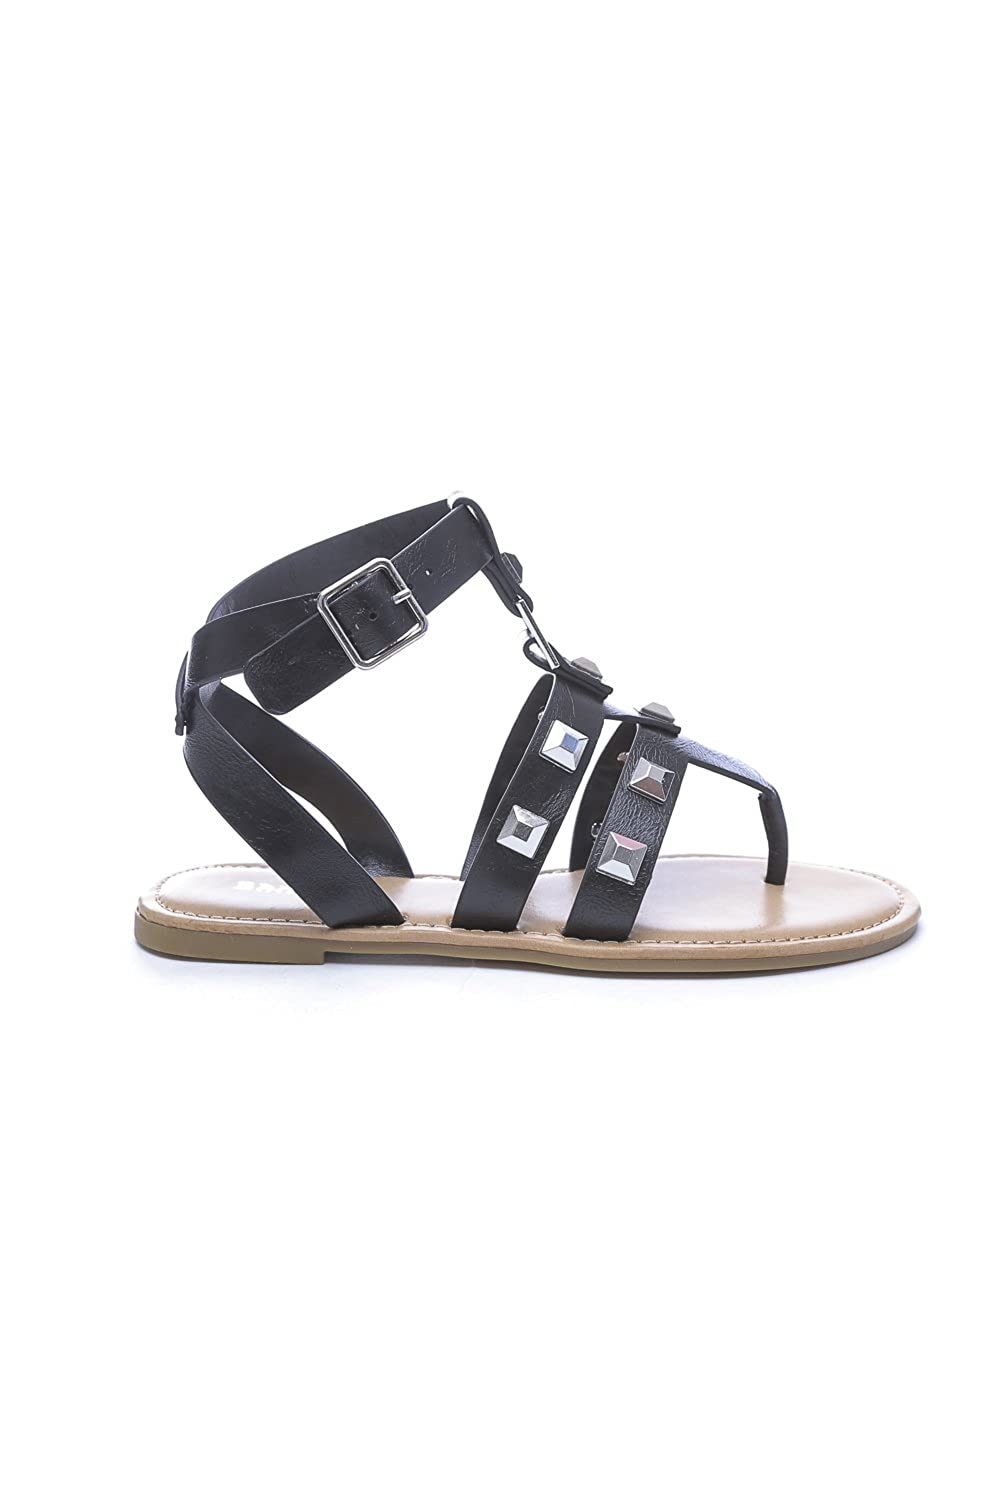 Bamboo Studded Strappy Thong Flat Sandal All Sizes